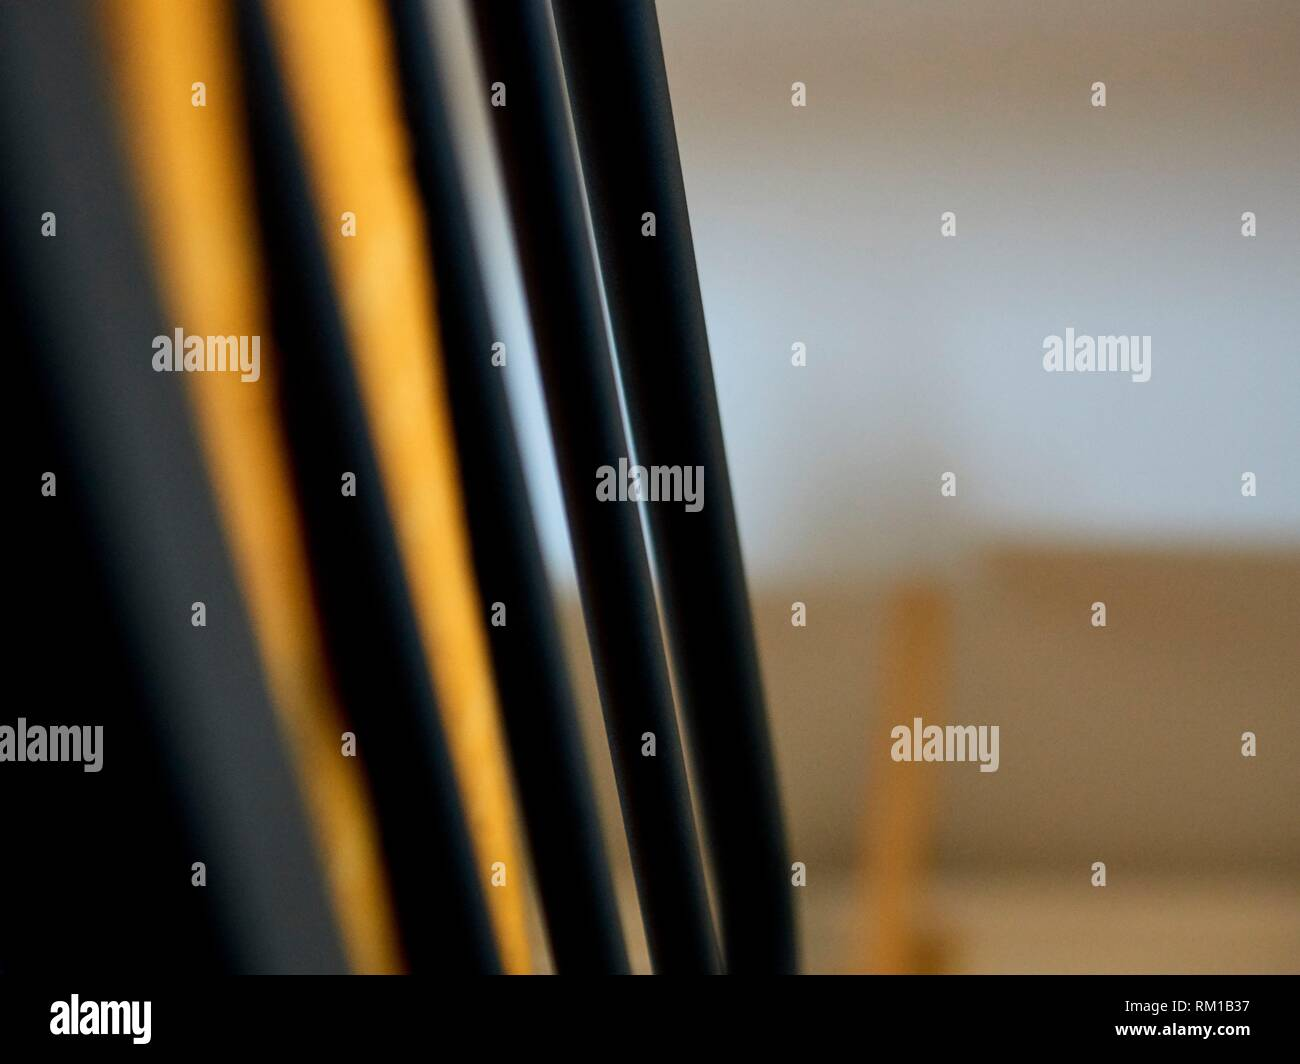 Abstract image, iron bars of a bunk seen from below - Stock Image